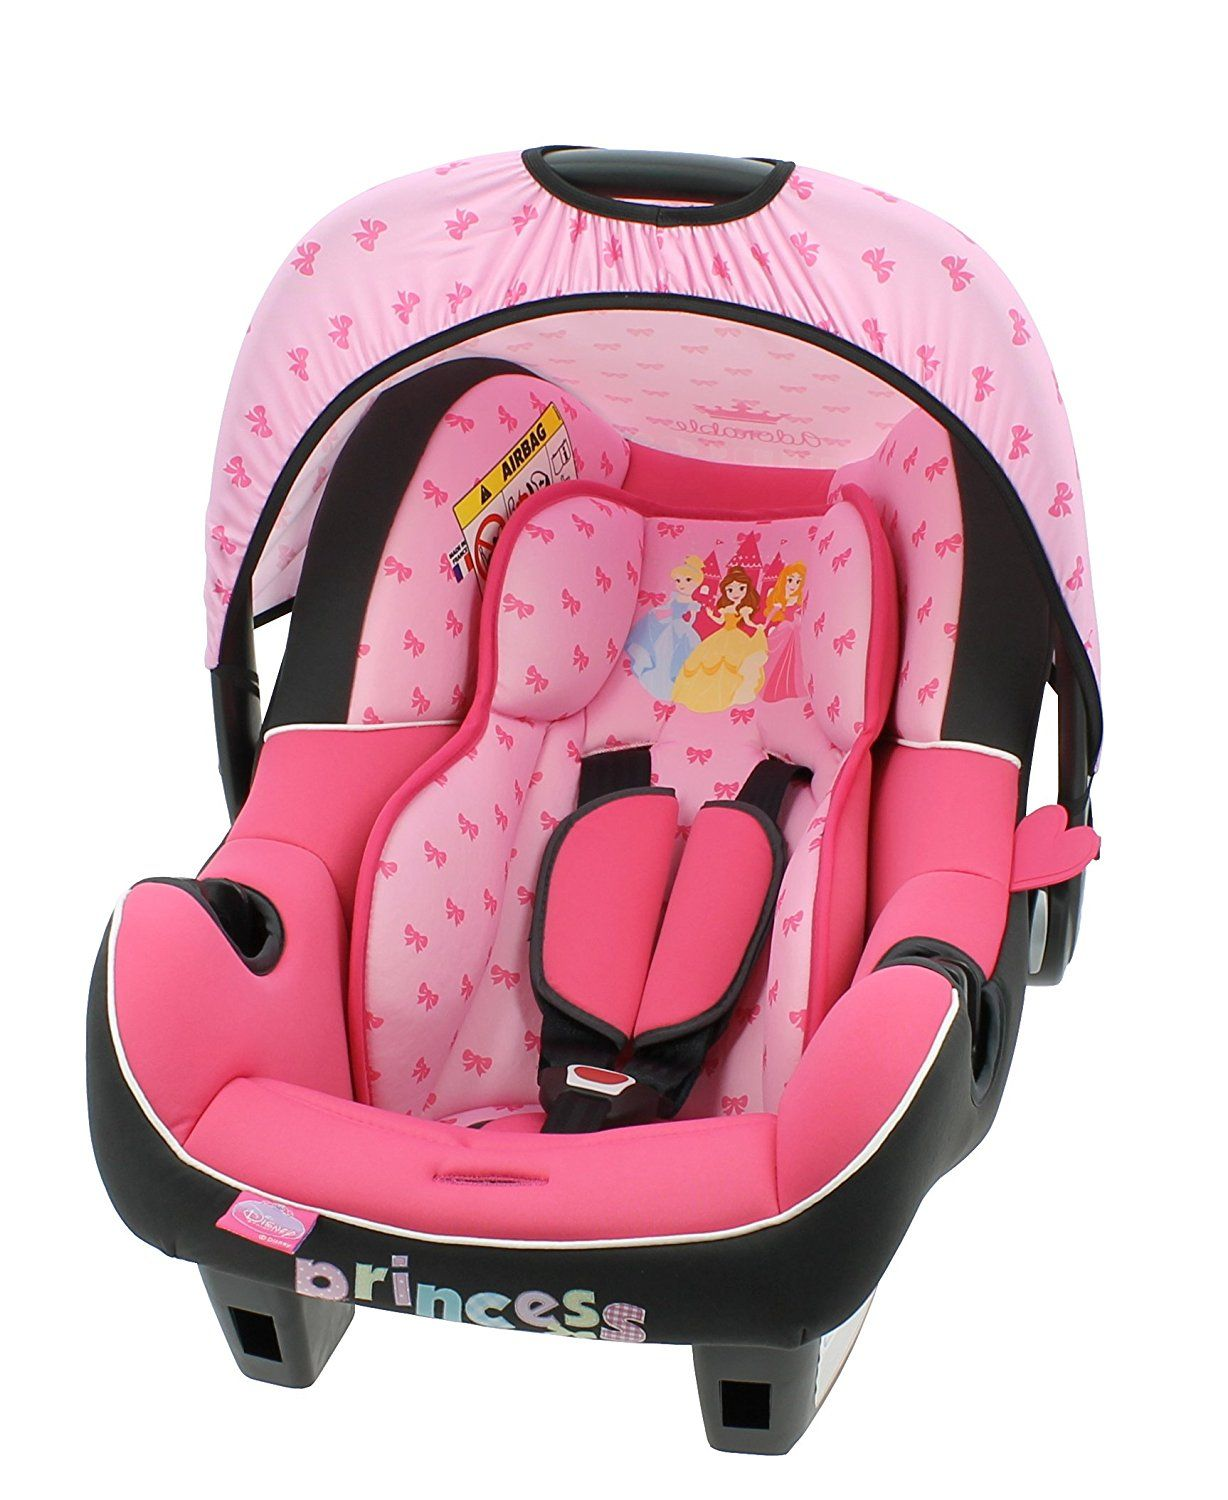 Baby Car Seat Uk Disney Princess Beone Sp Infant Carrier Car Seat Amazon Co